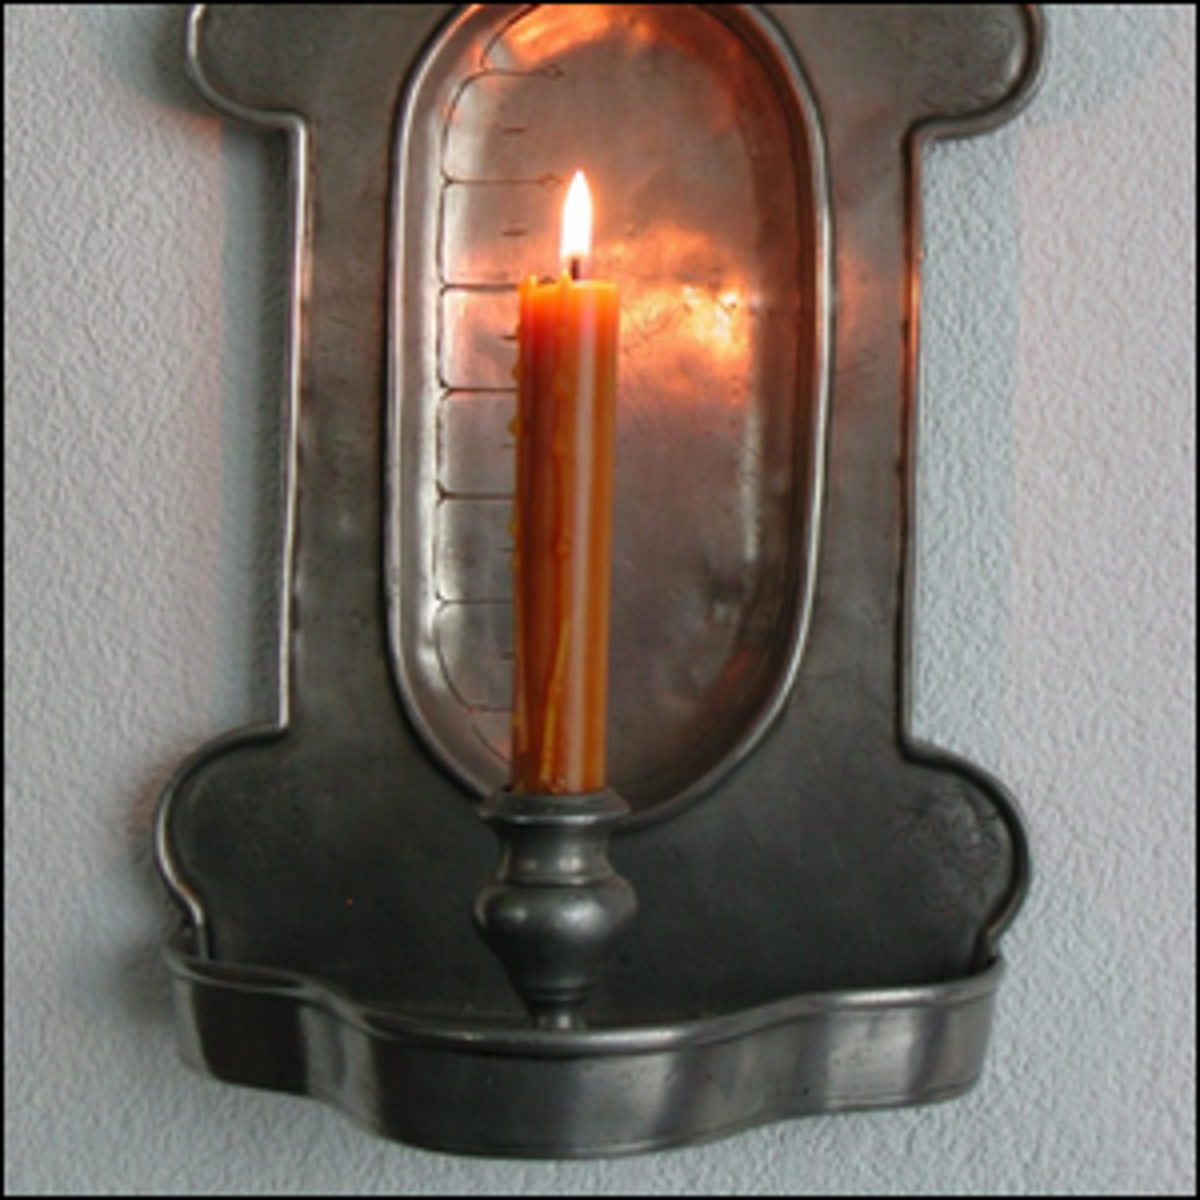 A candle clock being used.